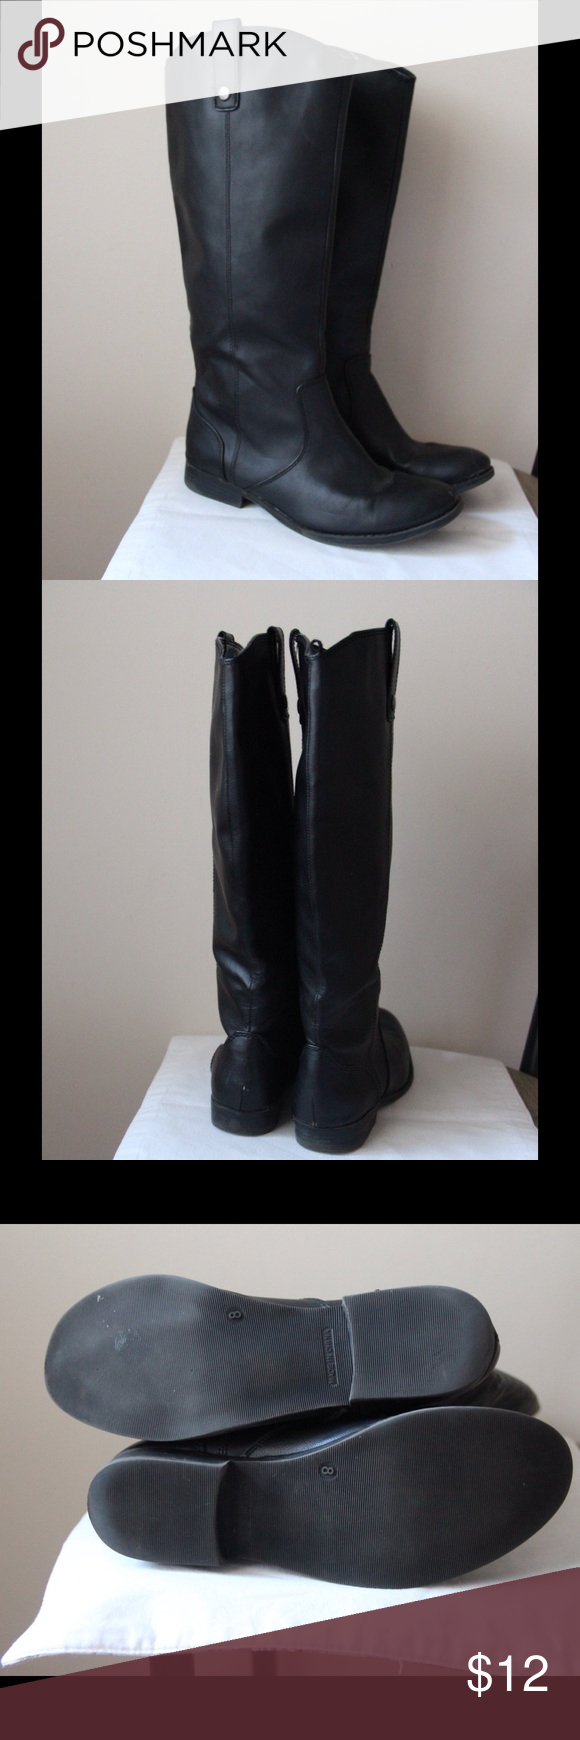 "Old Navy black riding boots Black colored faux leather riding style boots - short 1"" stacked heel - slip on style - 15"" boot shaft length - 15"" around top circumference - great condition - size 8 Old Navy Shoes"